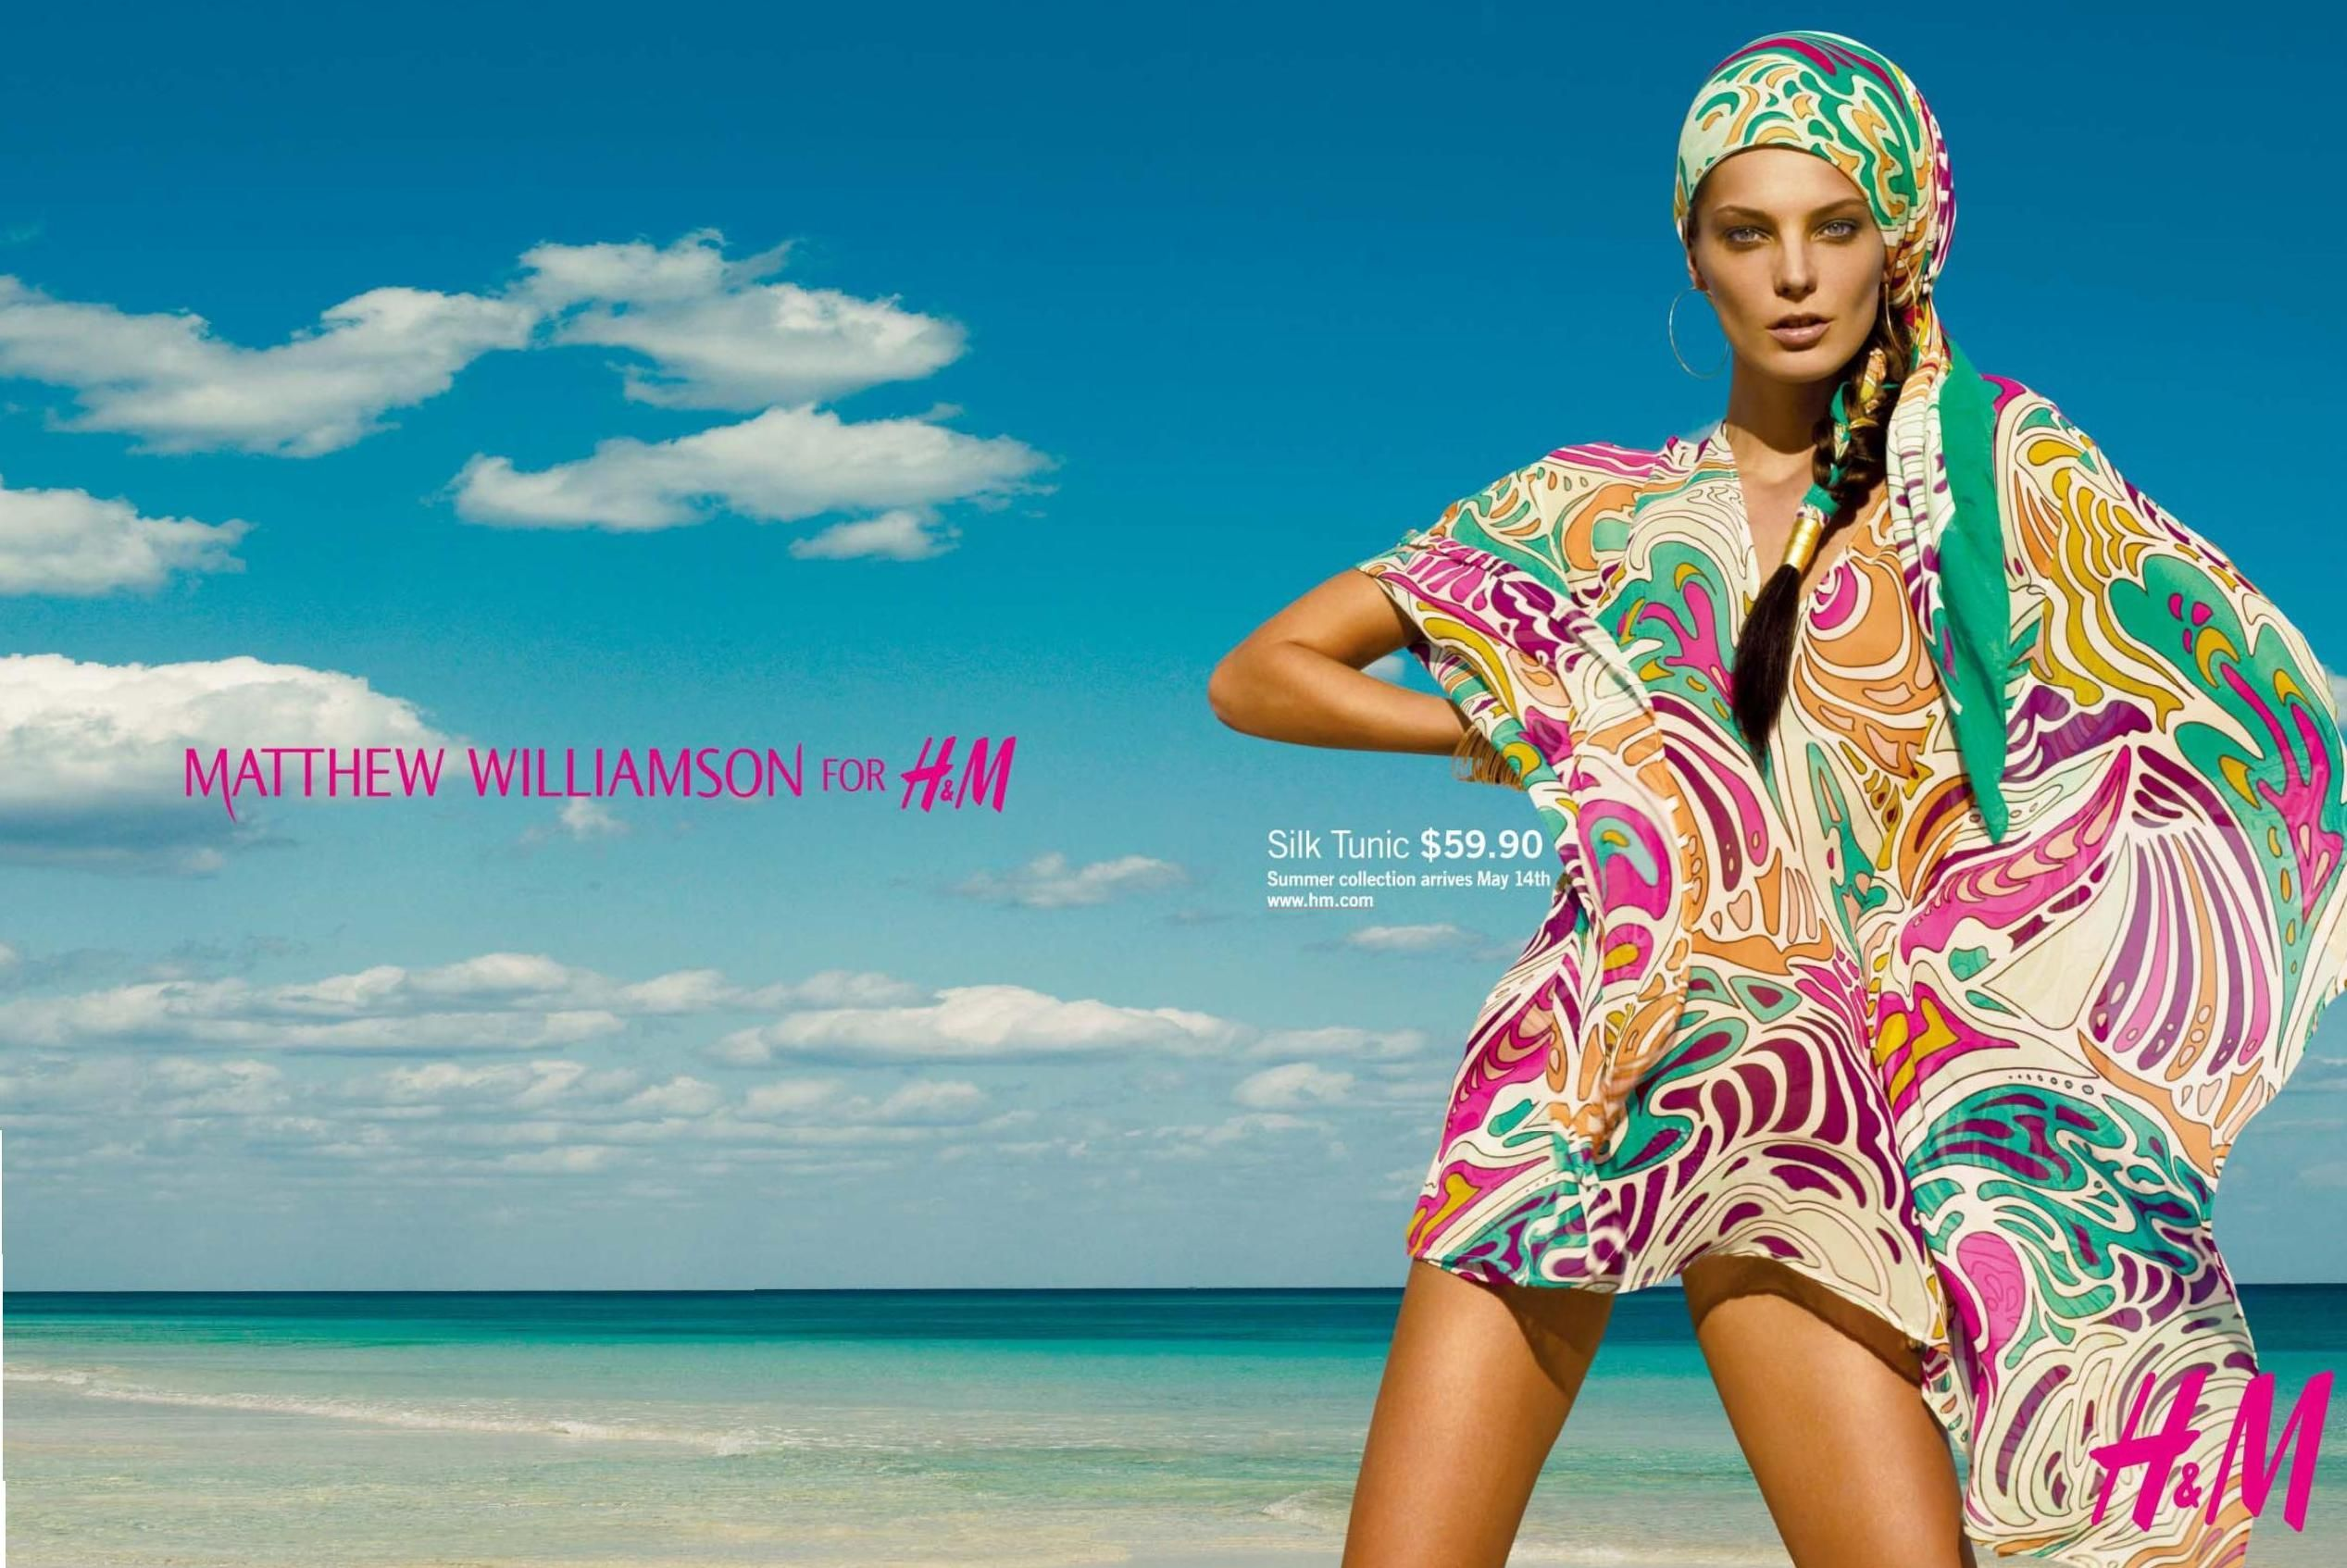 Matthew Williamson for H&M Summer '09 - Ad Campaign [Update .